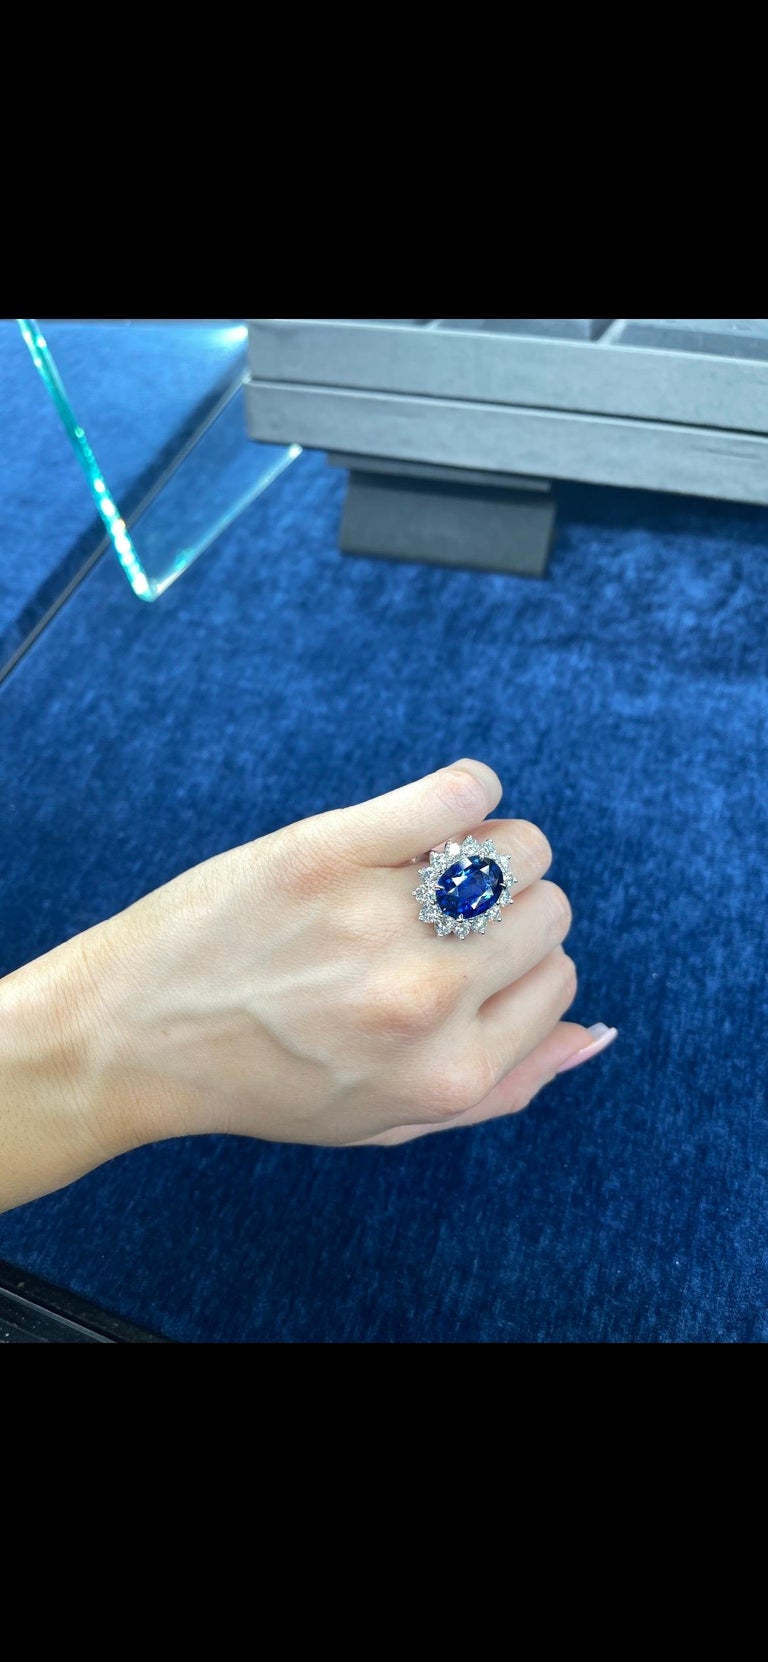 Princess Diana Inspired GIA Certified Sapphire Diamond Ring 15.31 Carats F VS For Sale 8